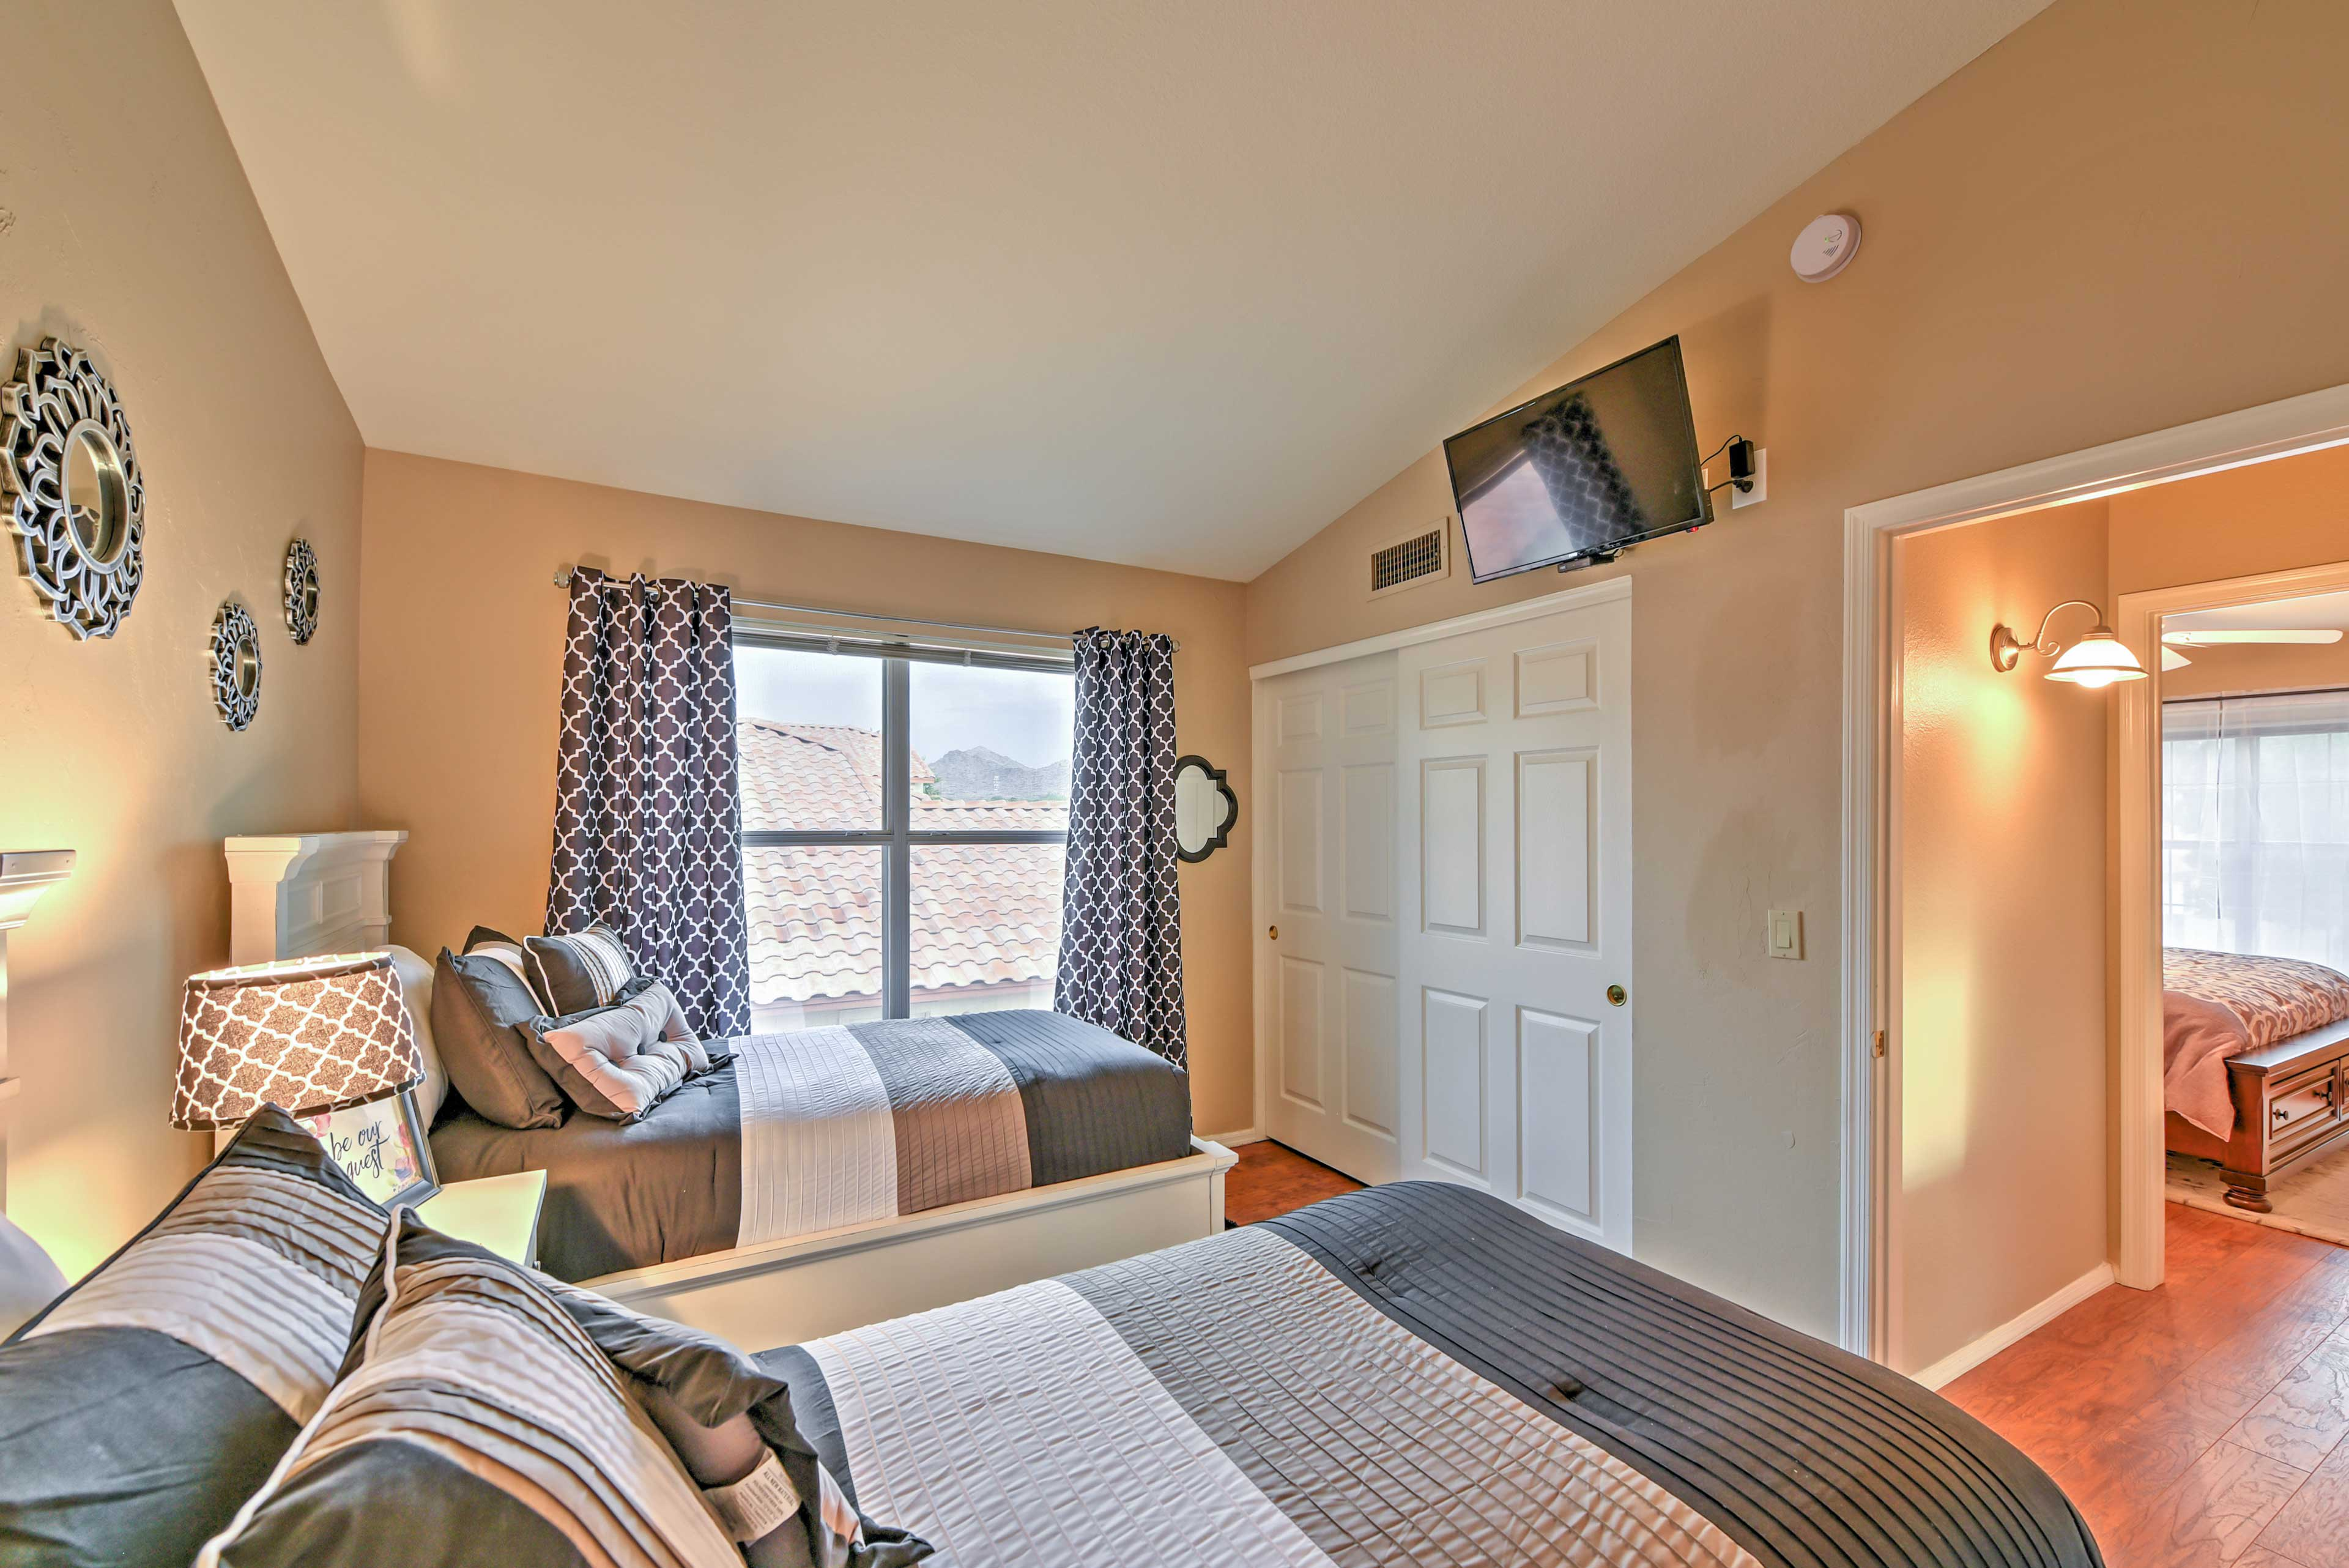 Unwind with a movie on the flat-screen TV from the 2 twin beds.